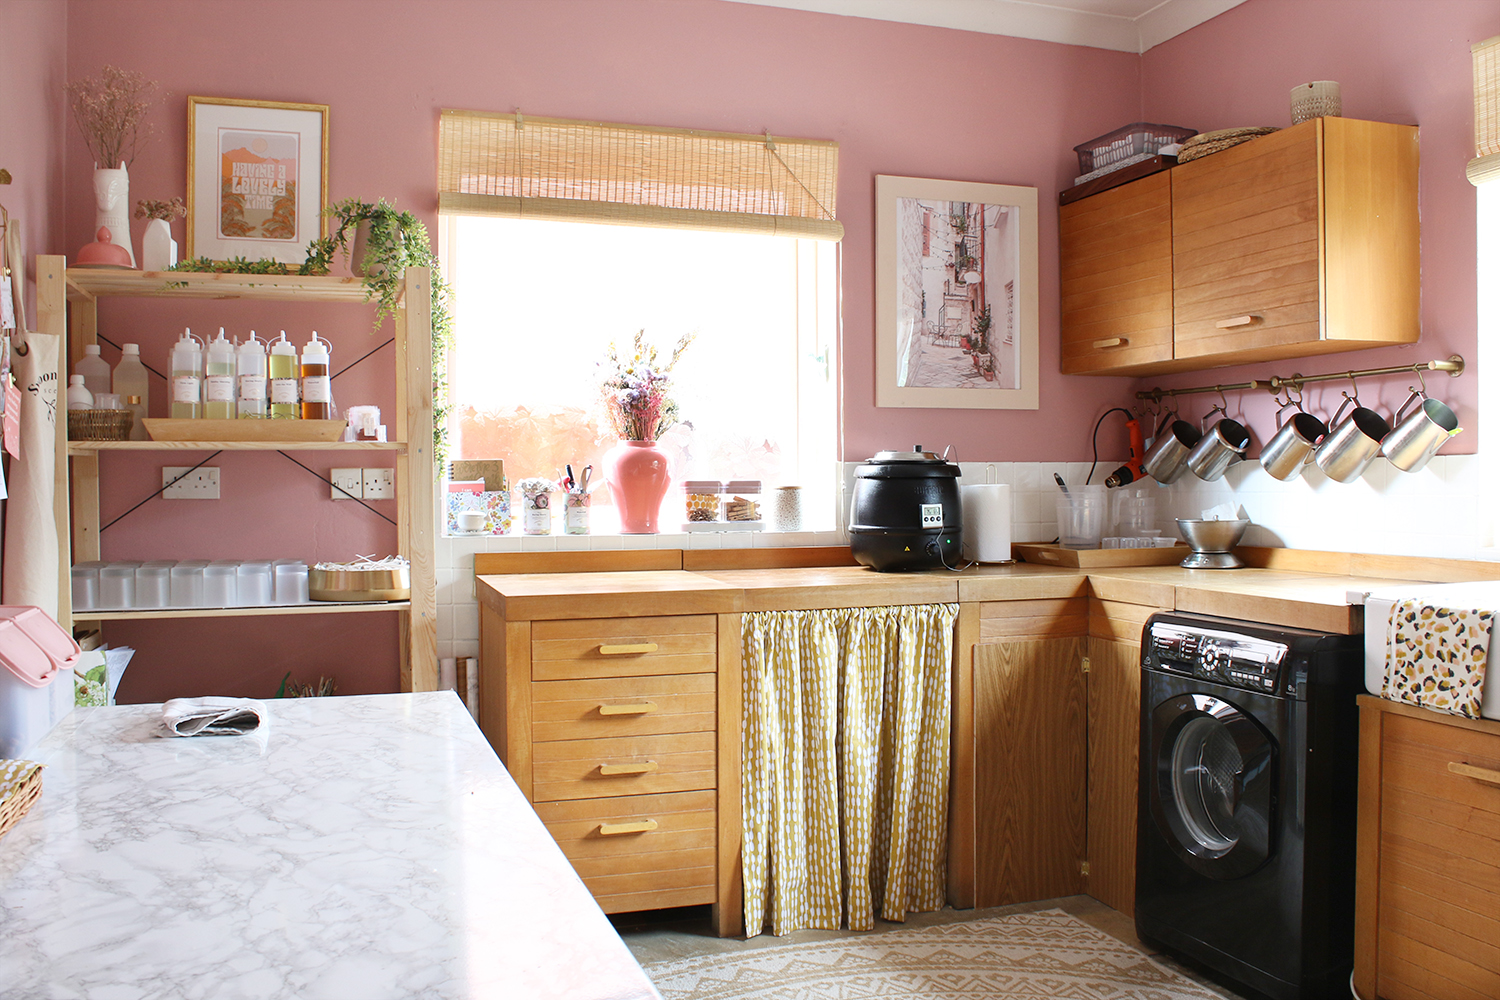 Utility and Studio refresh in pink and yellow